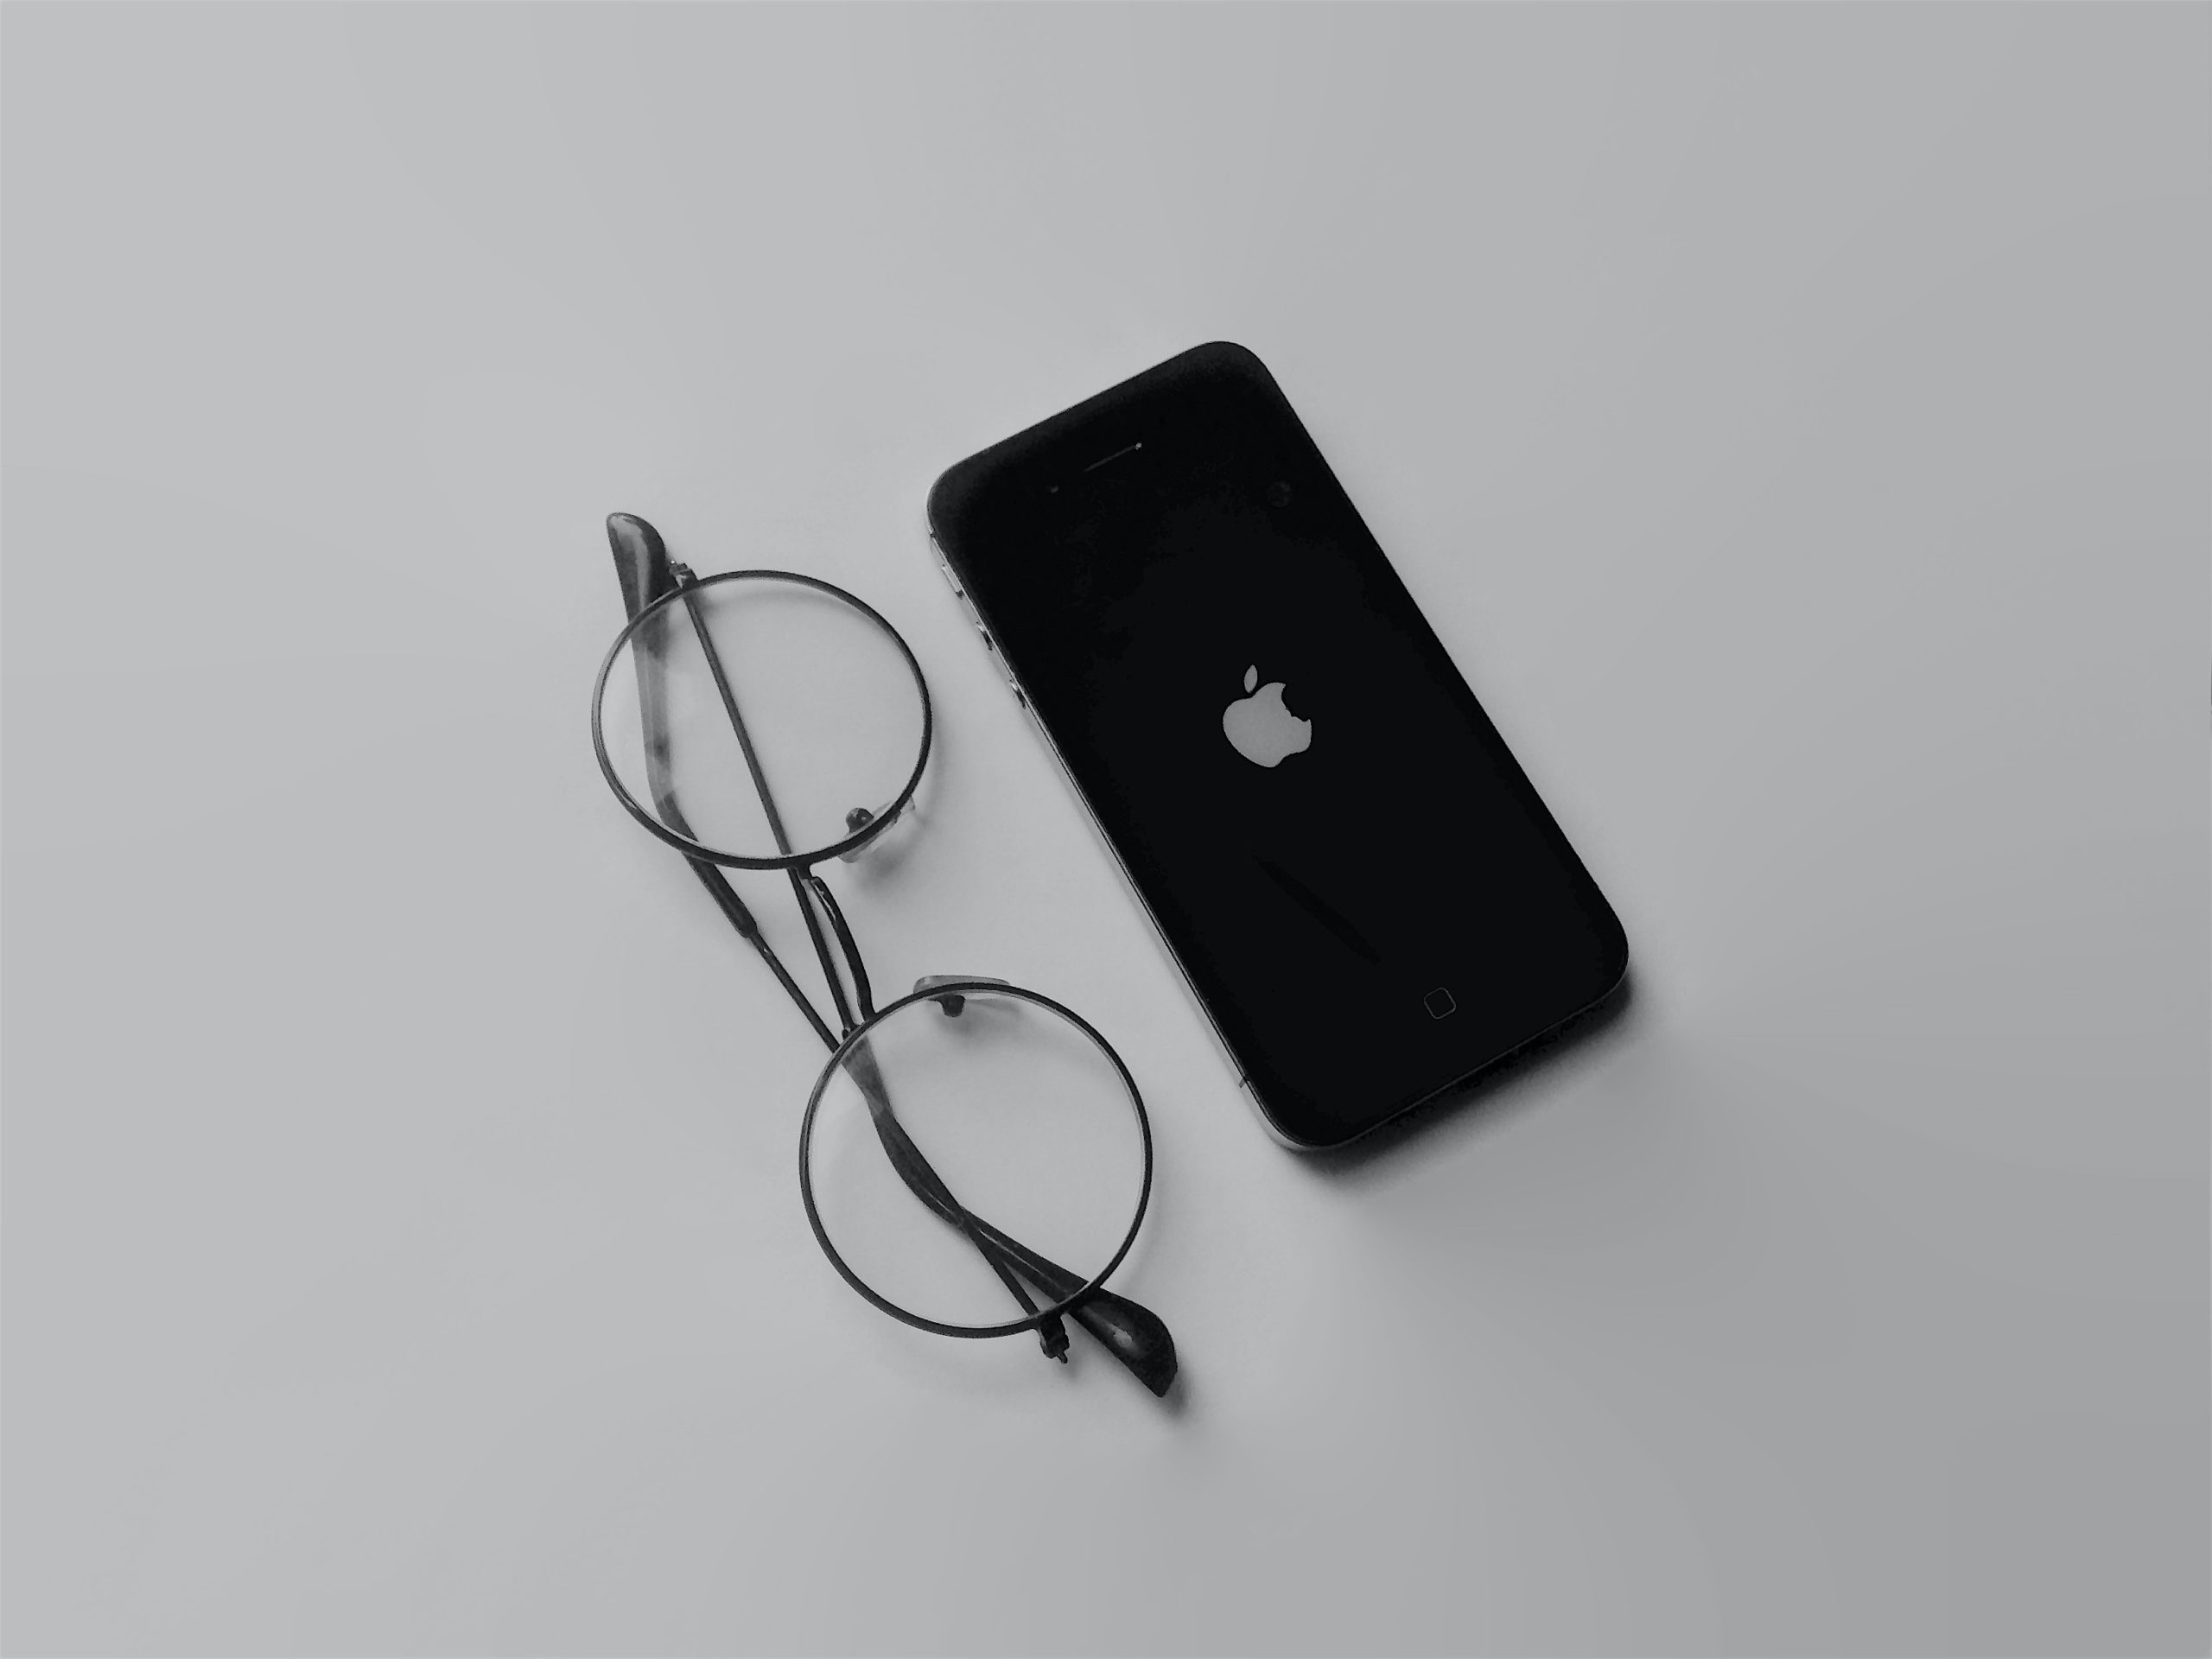 black iphone 4 beside black framed eyeglasses